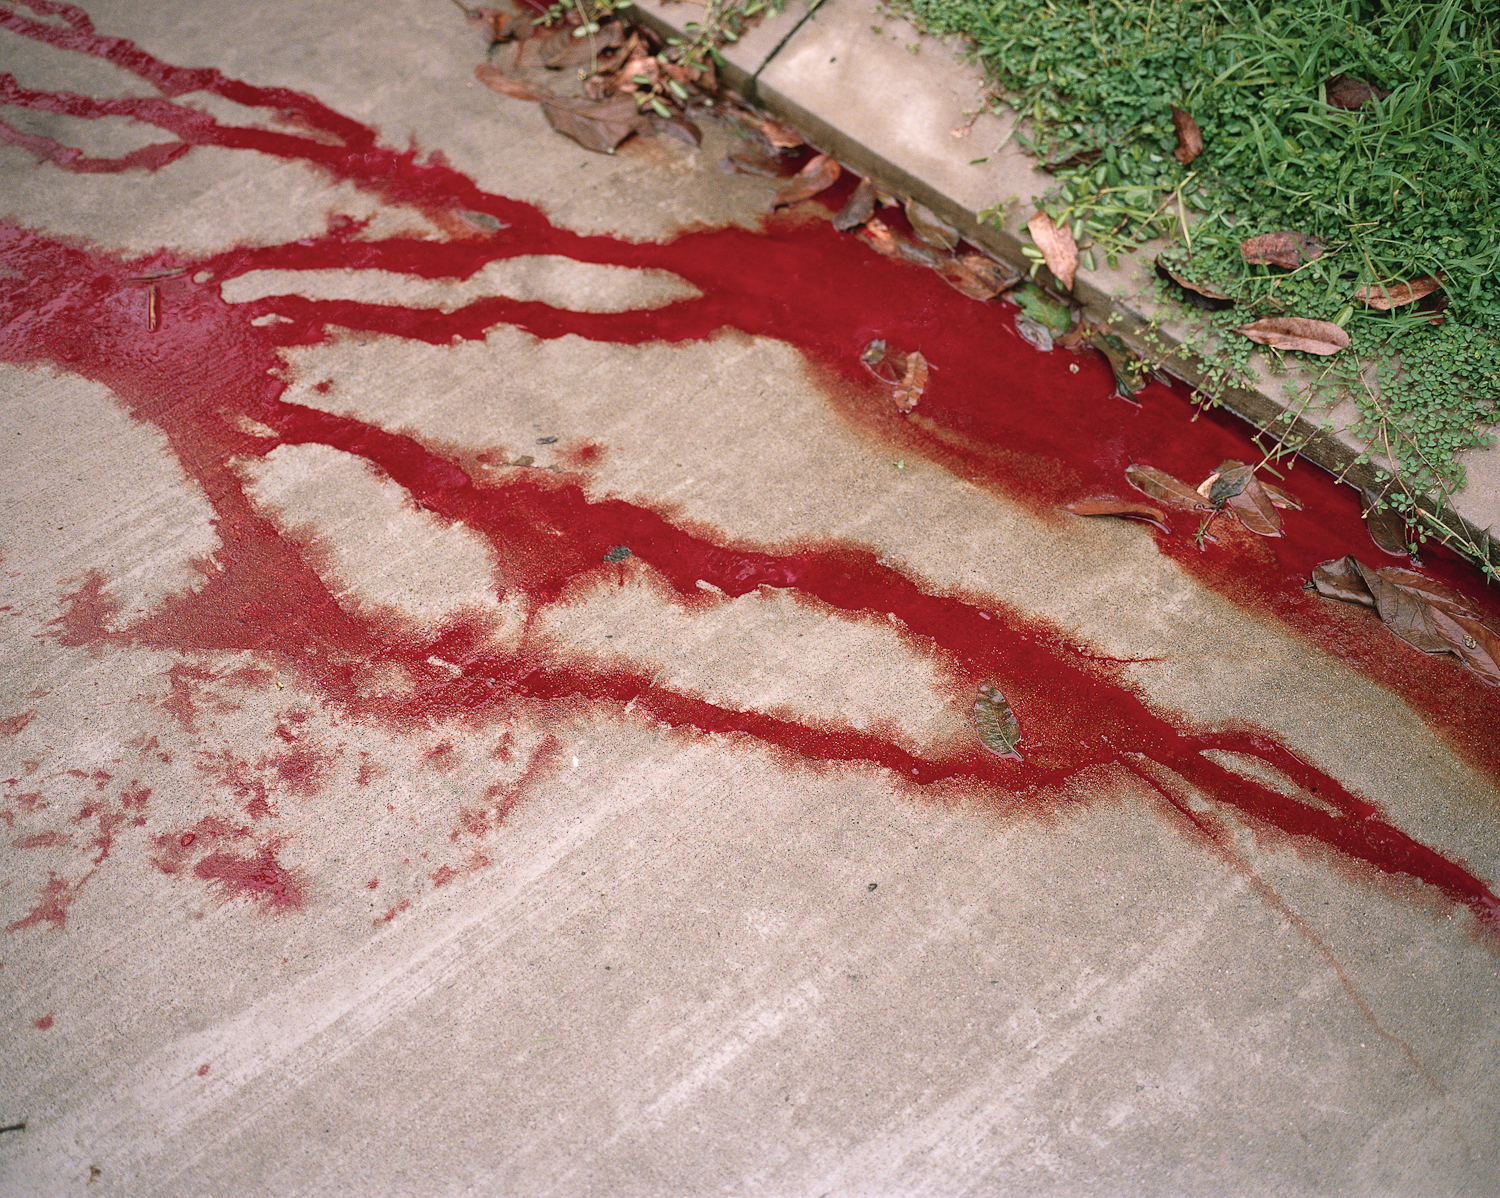 The blood of two brothers and their friend in San Pedro Sula.